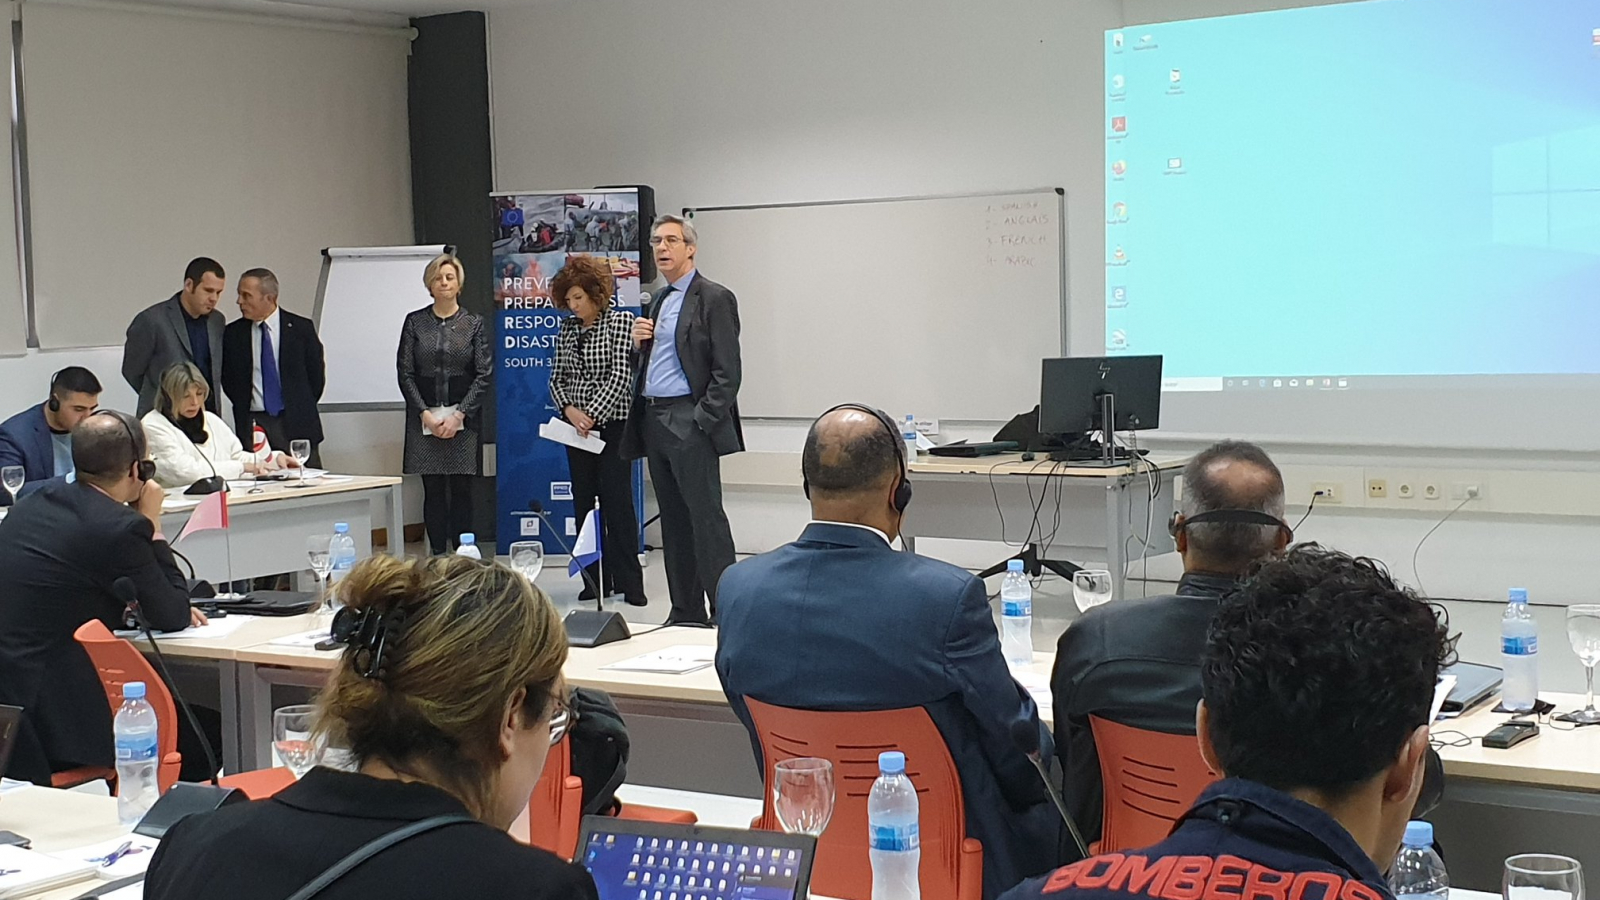 EU organises workshop on volunteering, population information and people response facing crisis